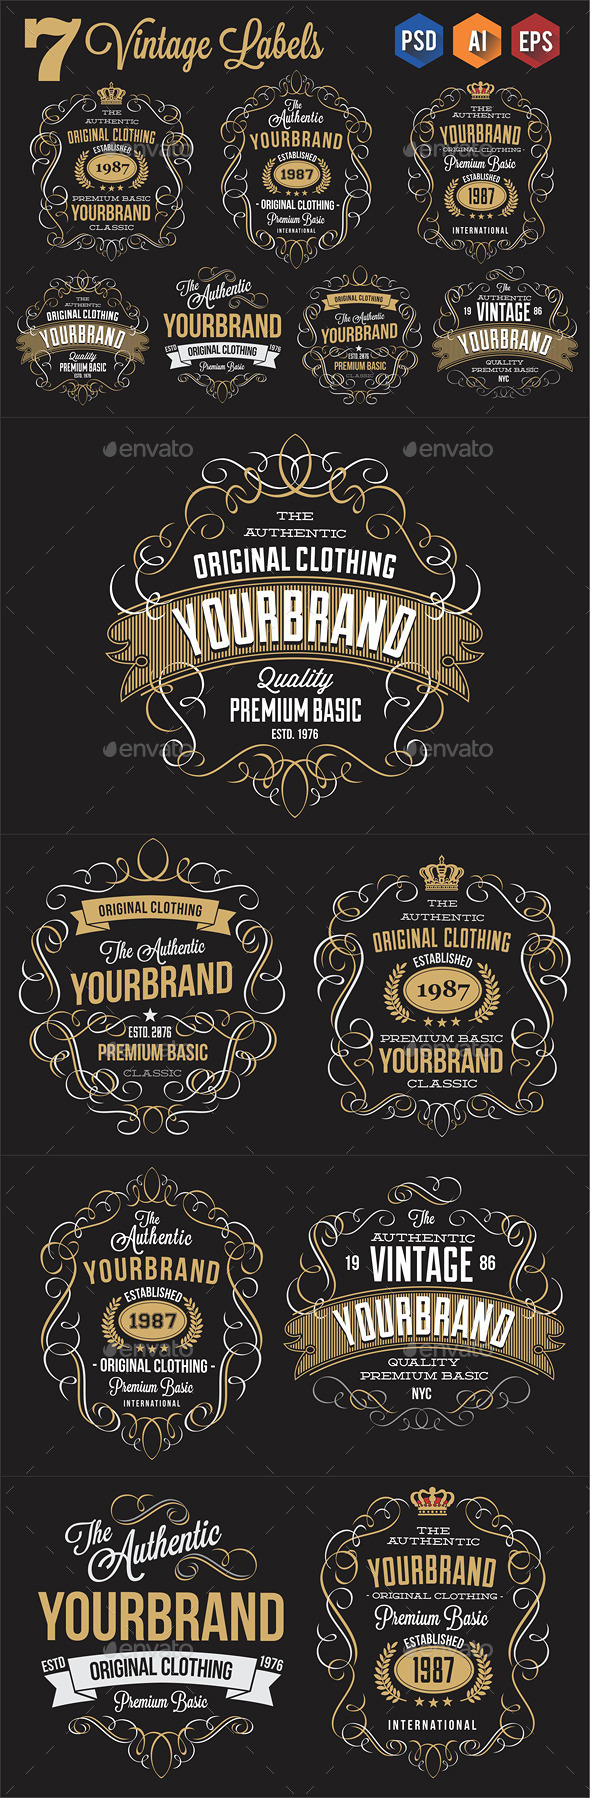 GraphicRiver 7 Vintage Labels 11411880